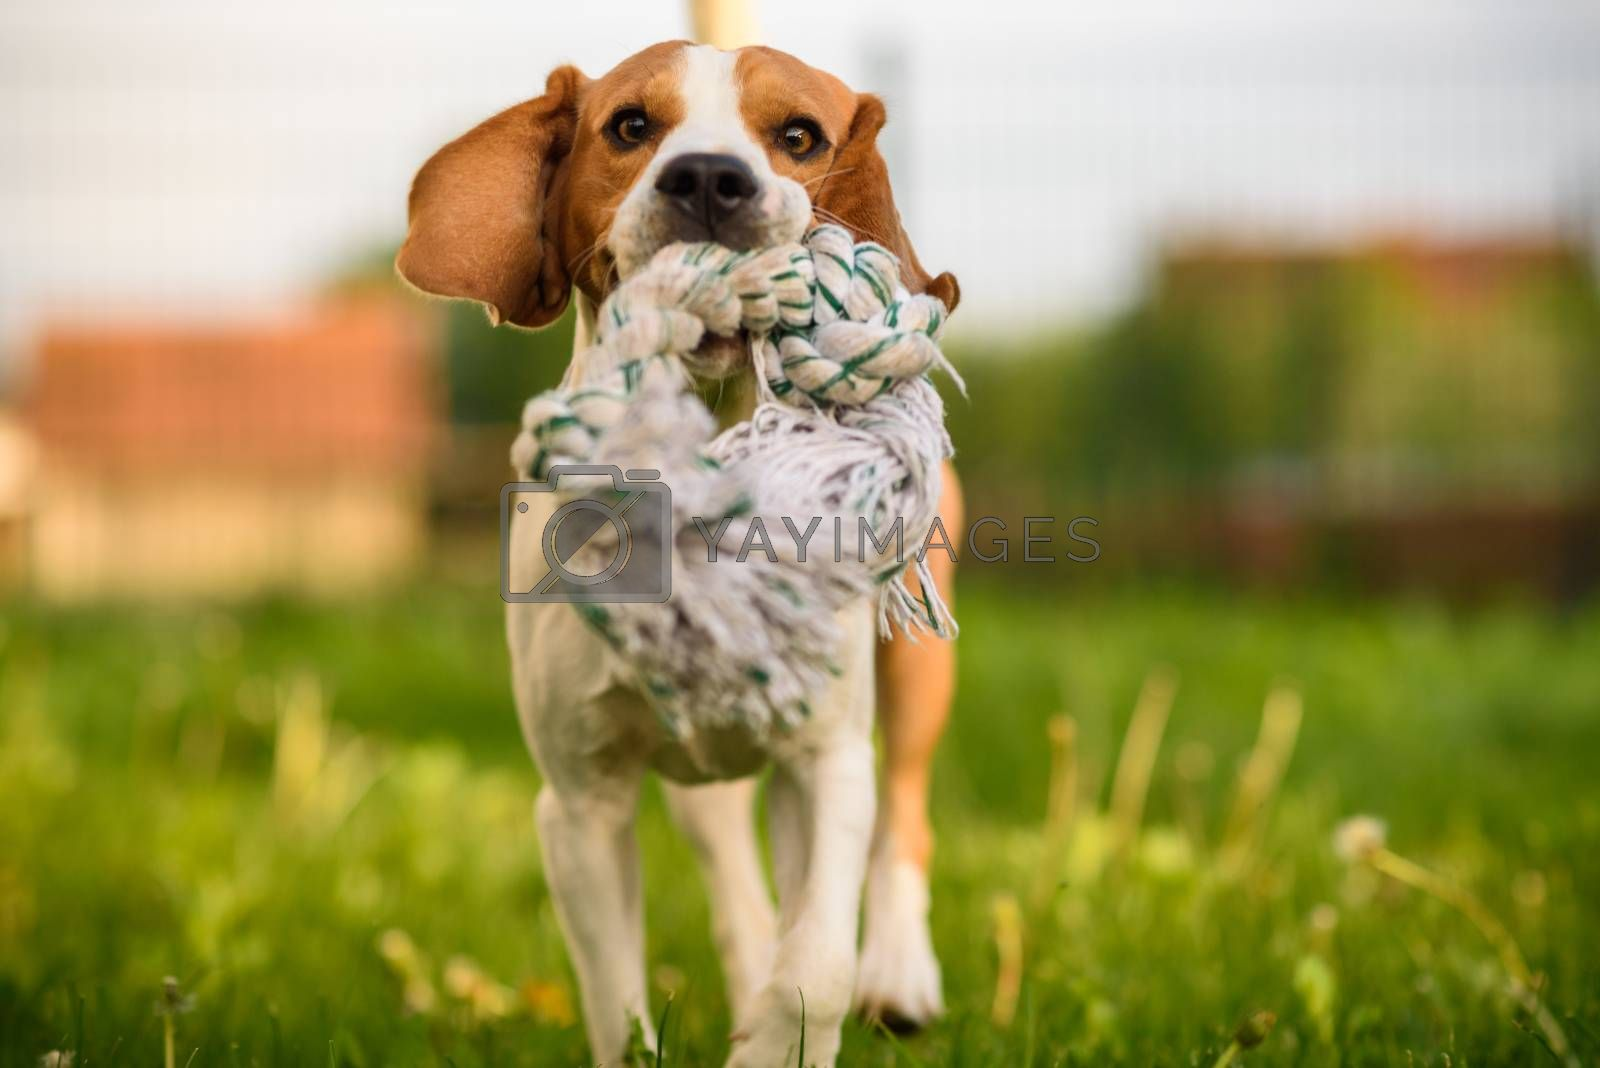 Beagle dog jumping and running with a toy outdoors towards the camera